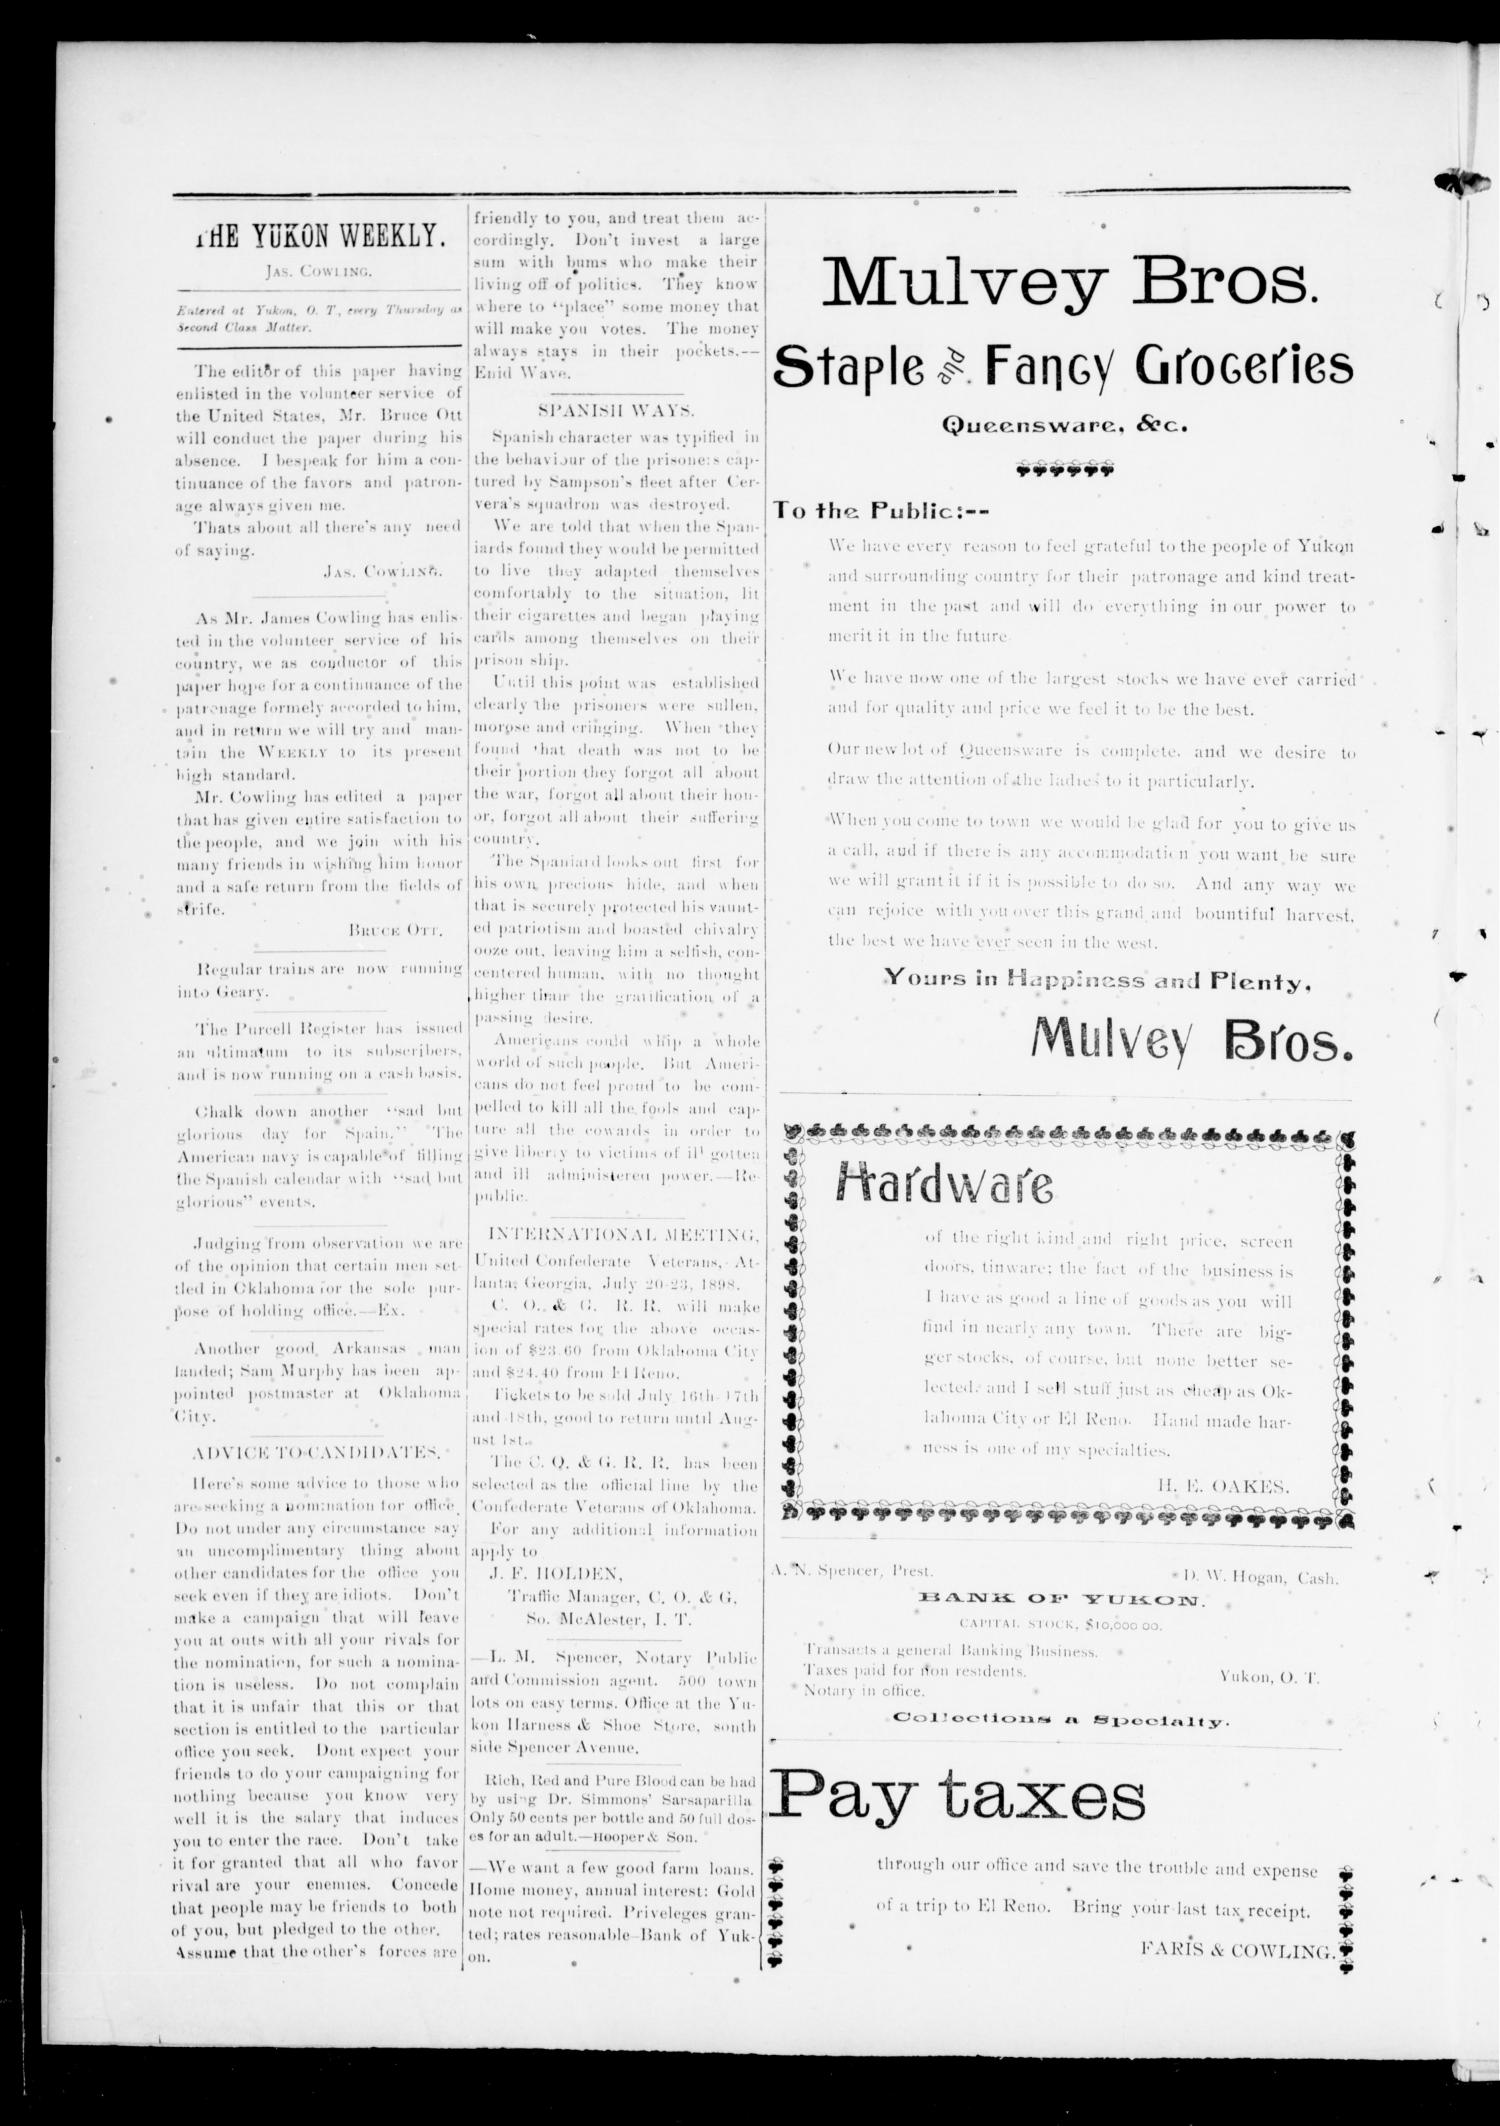 The Yukon Weekly. (Yukon, Okla.), Vol. 6, No. 21, Ed. 1 Thursday, July 7, 1898                                                                                                      [Sequence #]: 4 of 8